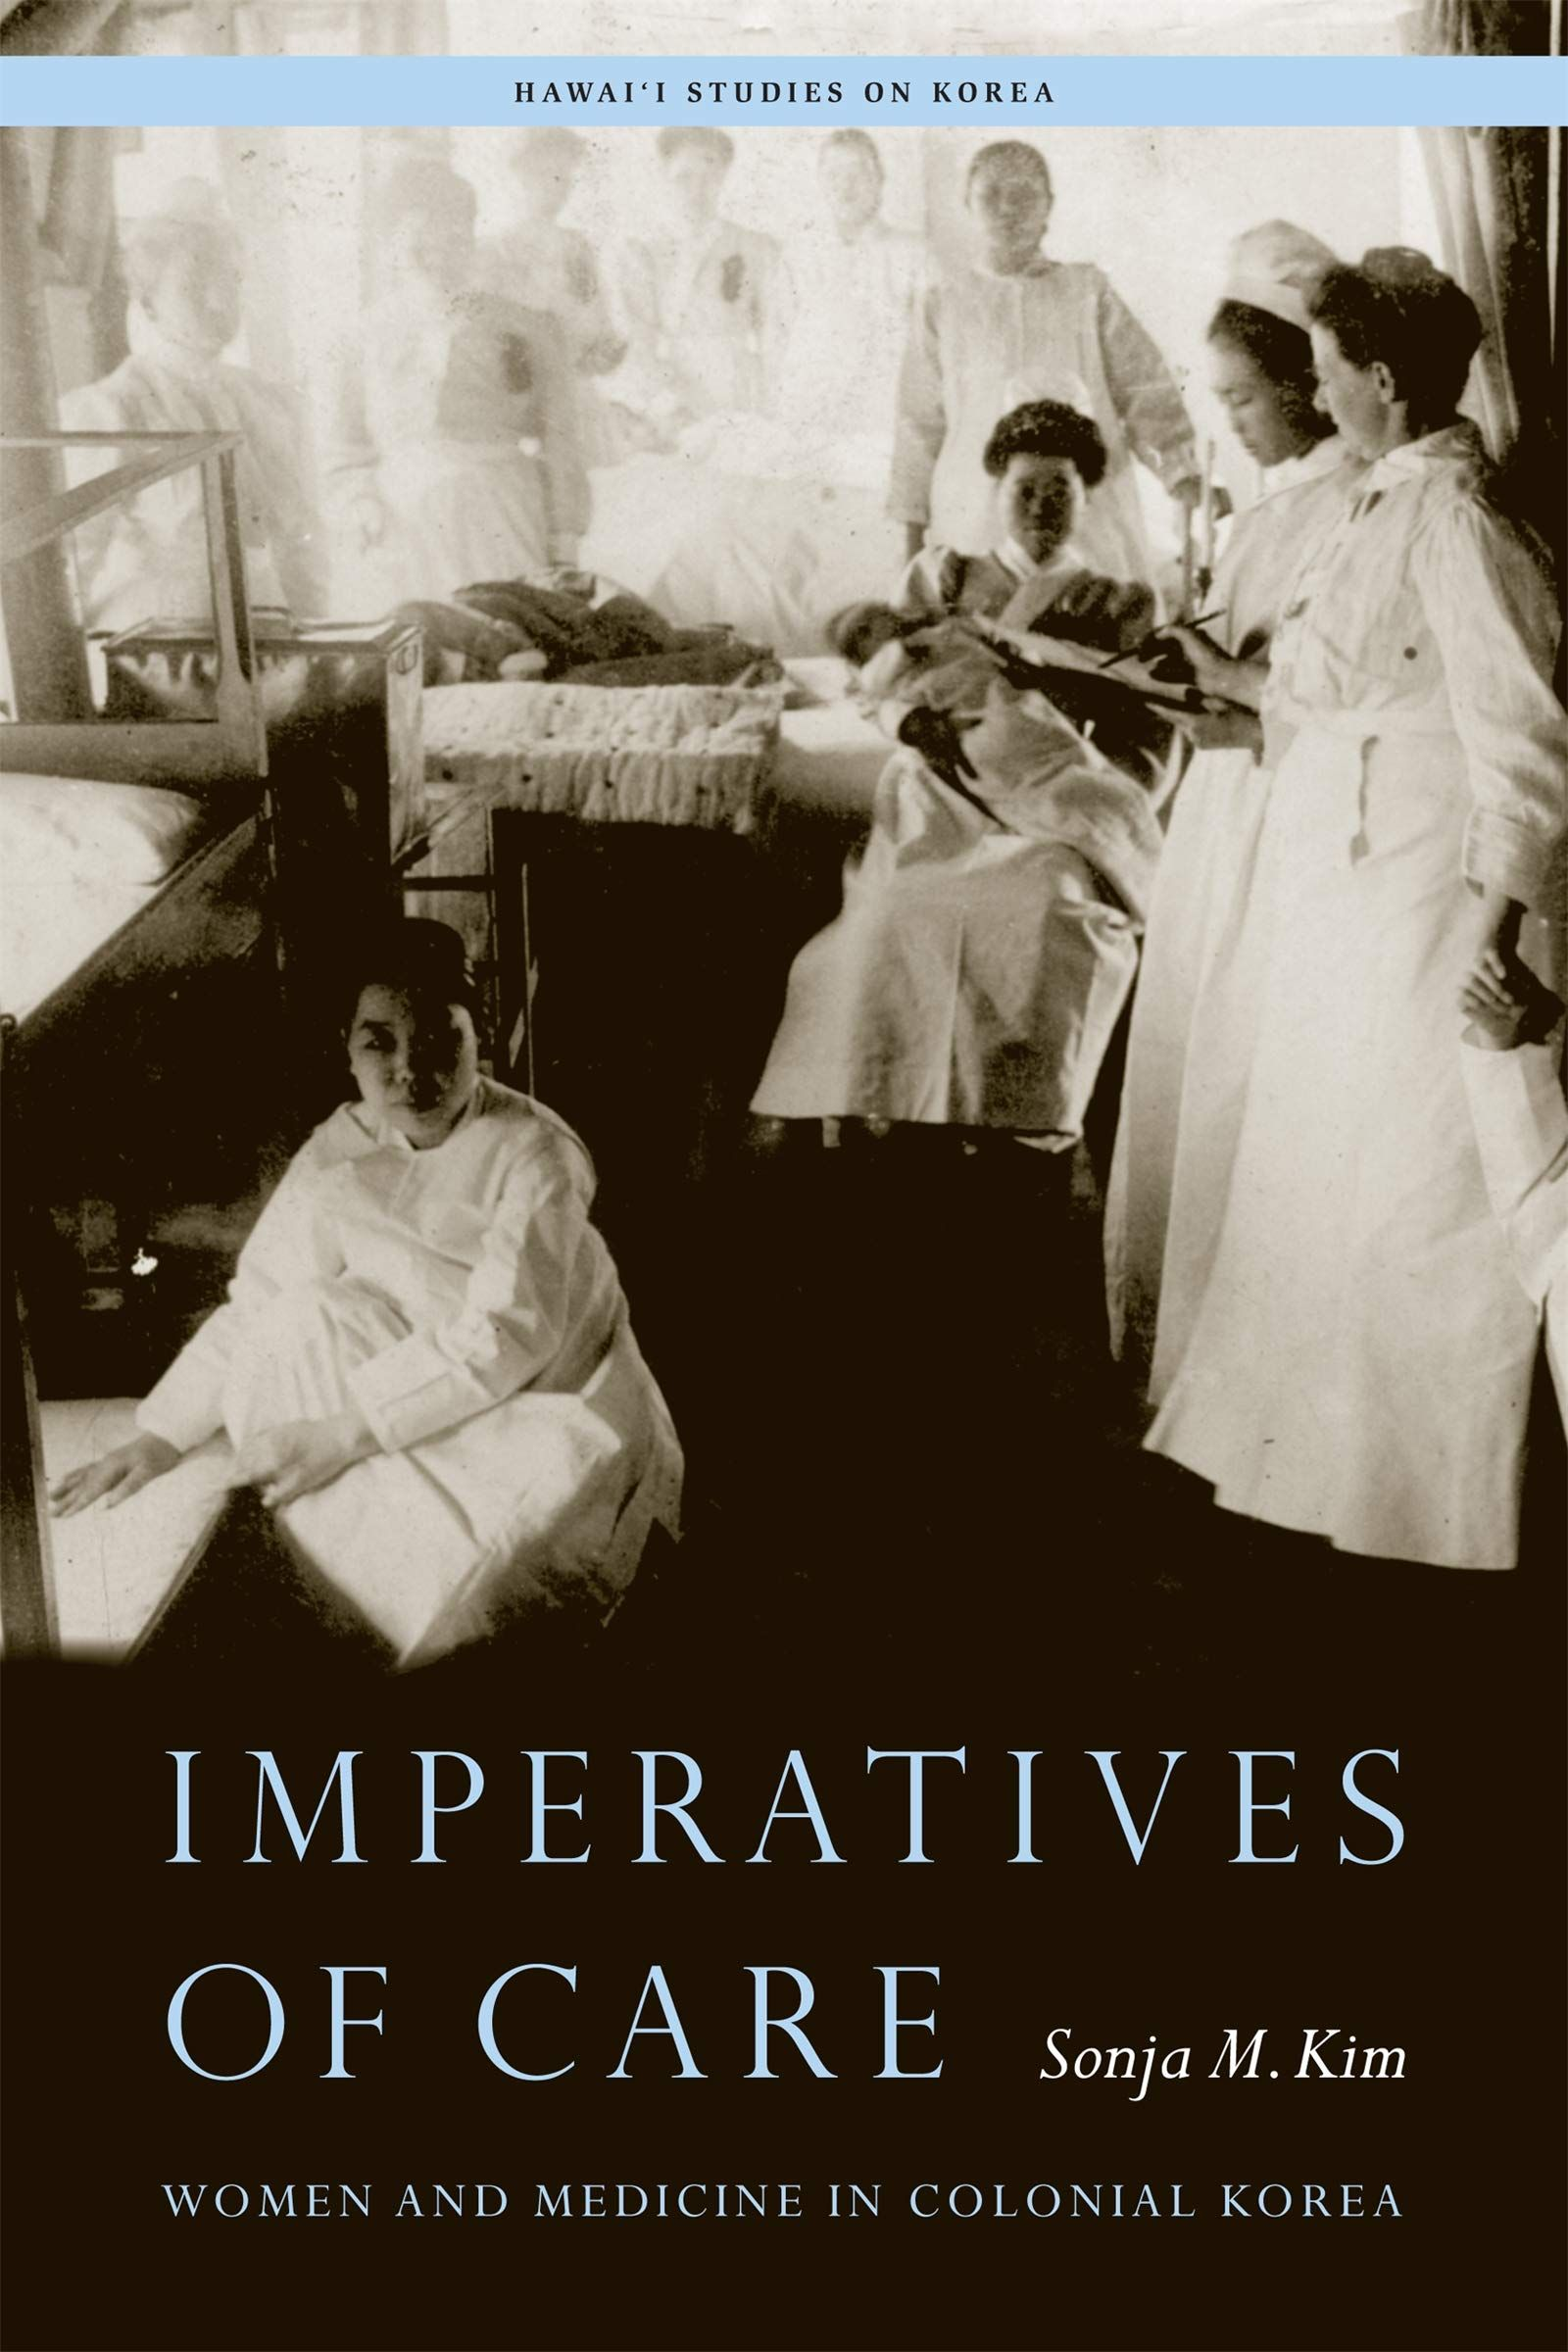 Imperatives of Care: Women and Medicine in Colonial Korea (Hawai'i